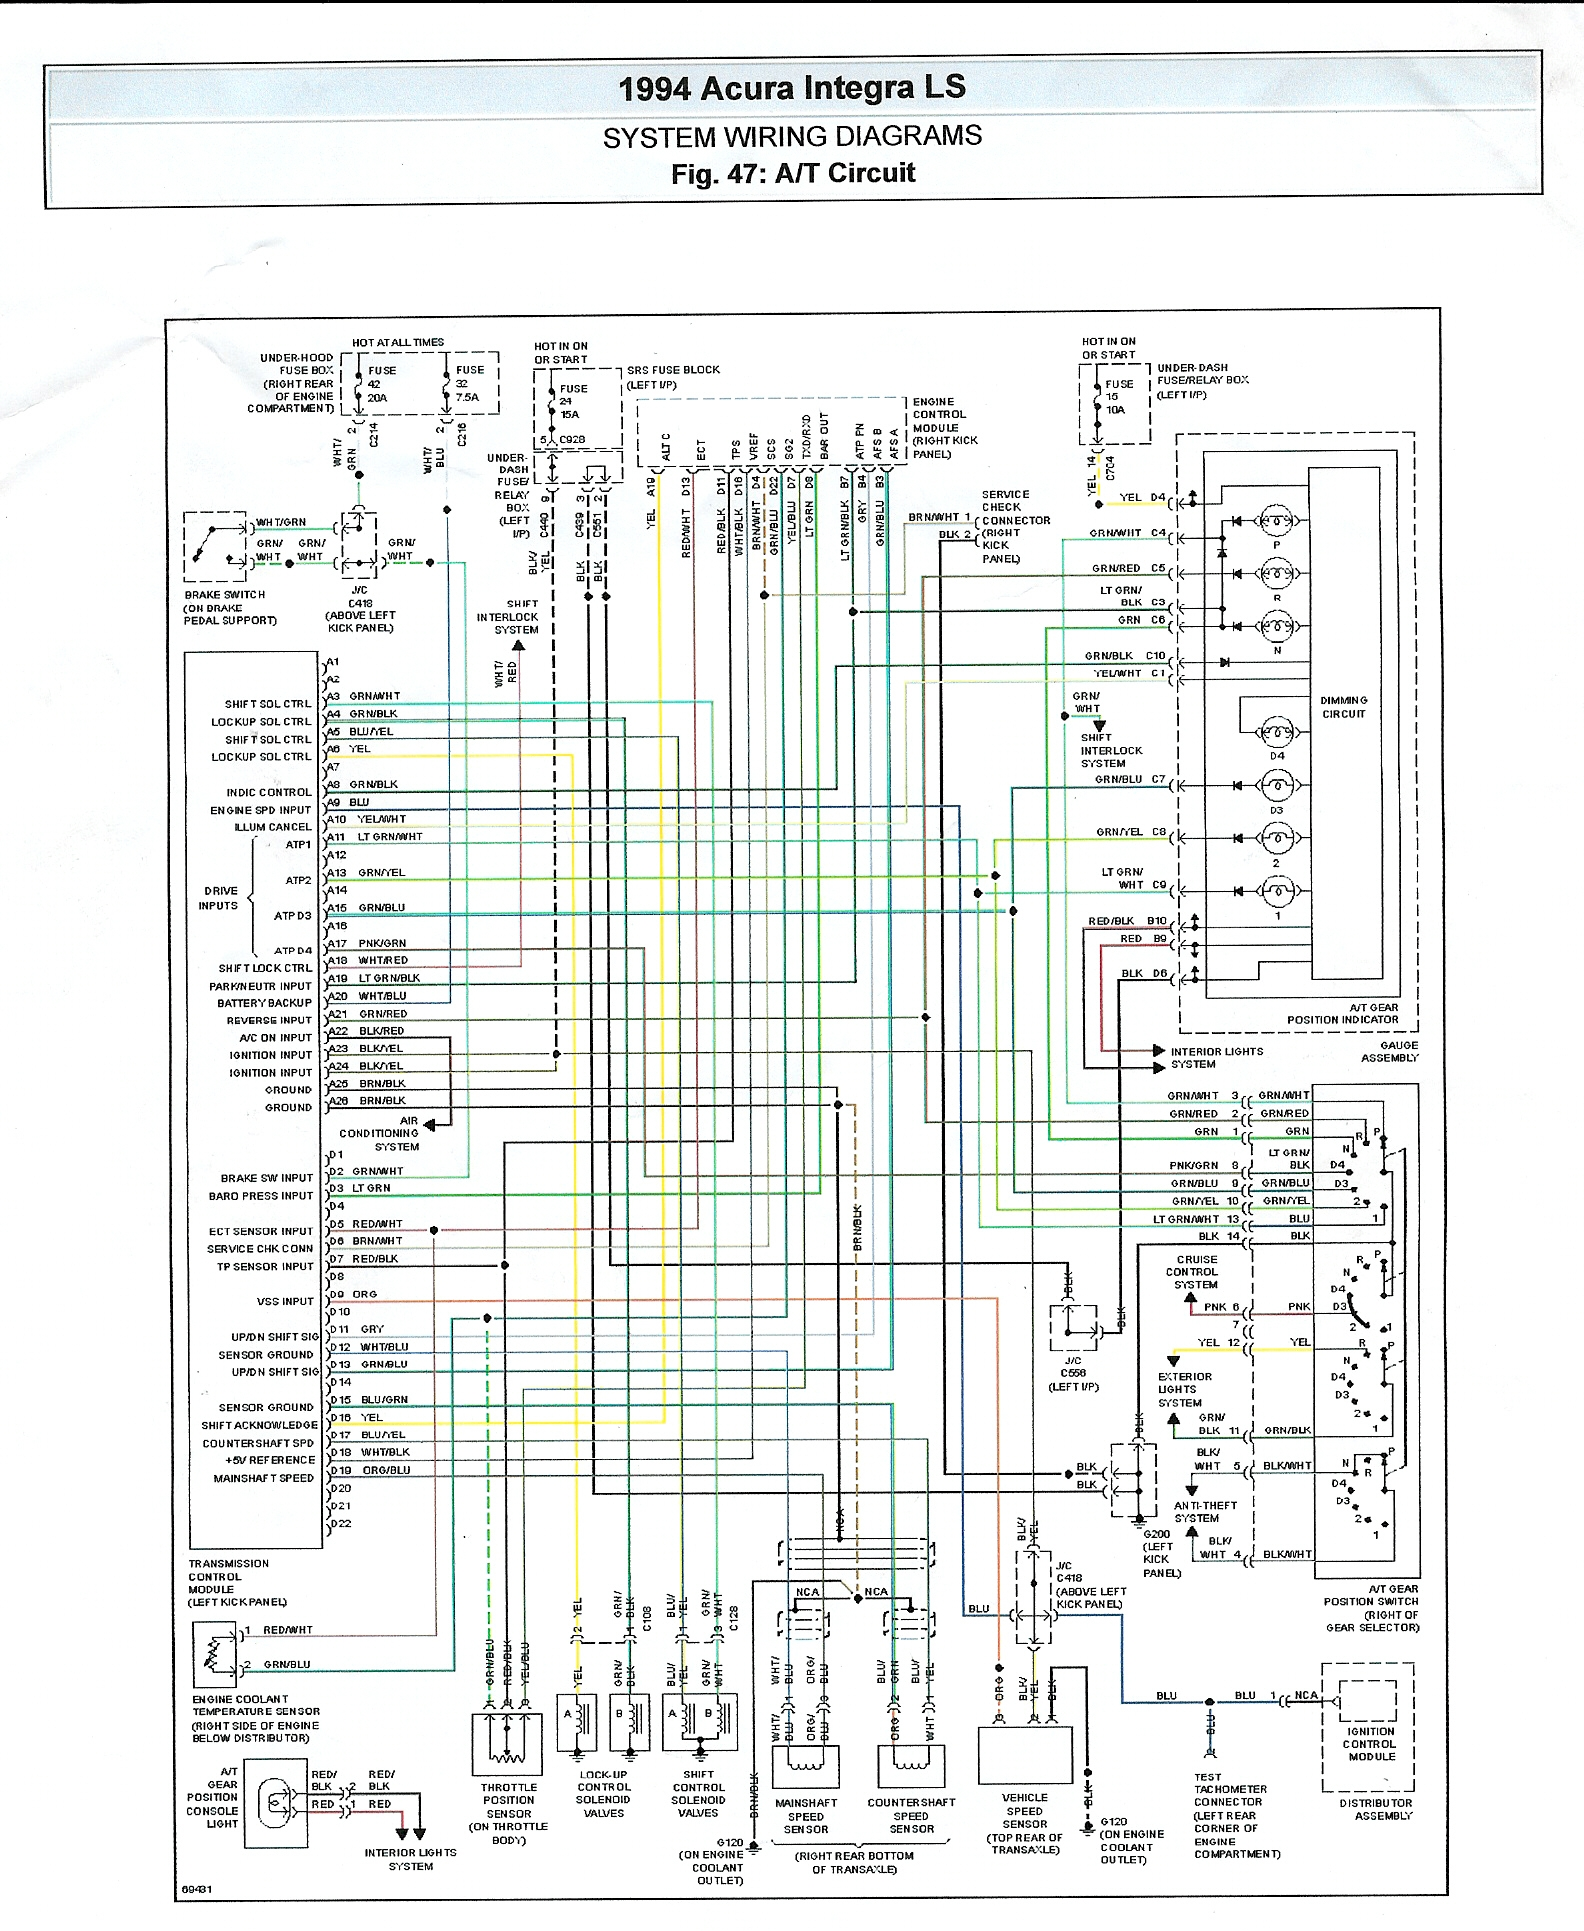 34A Wiring Diagram For 1991 Acura Integra | Wiring Resources on